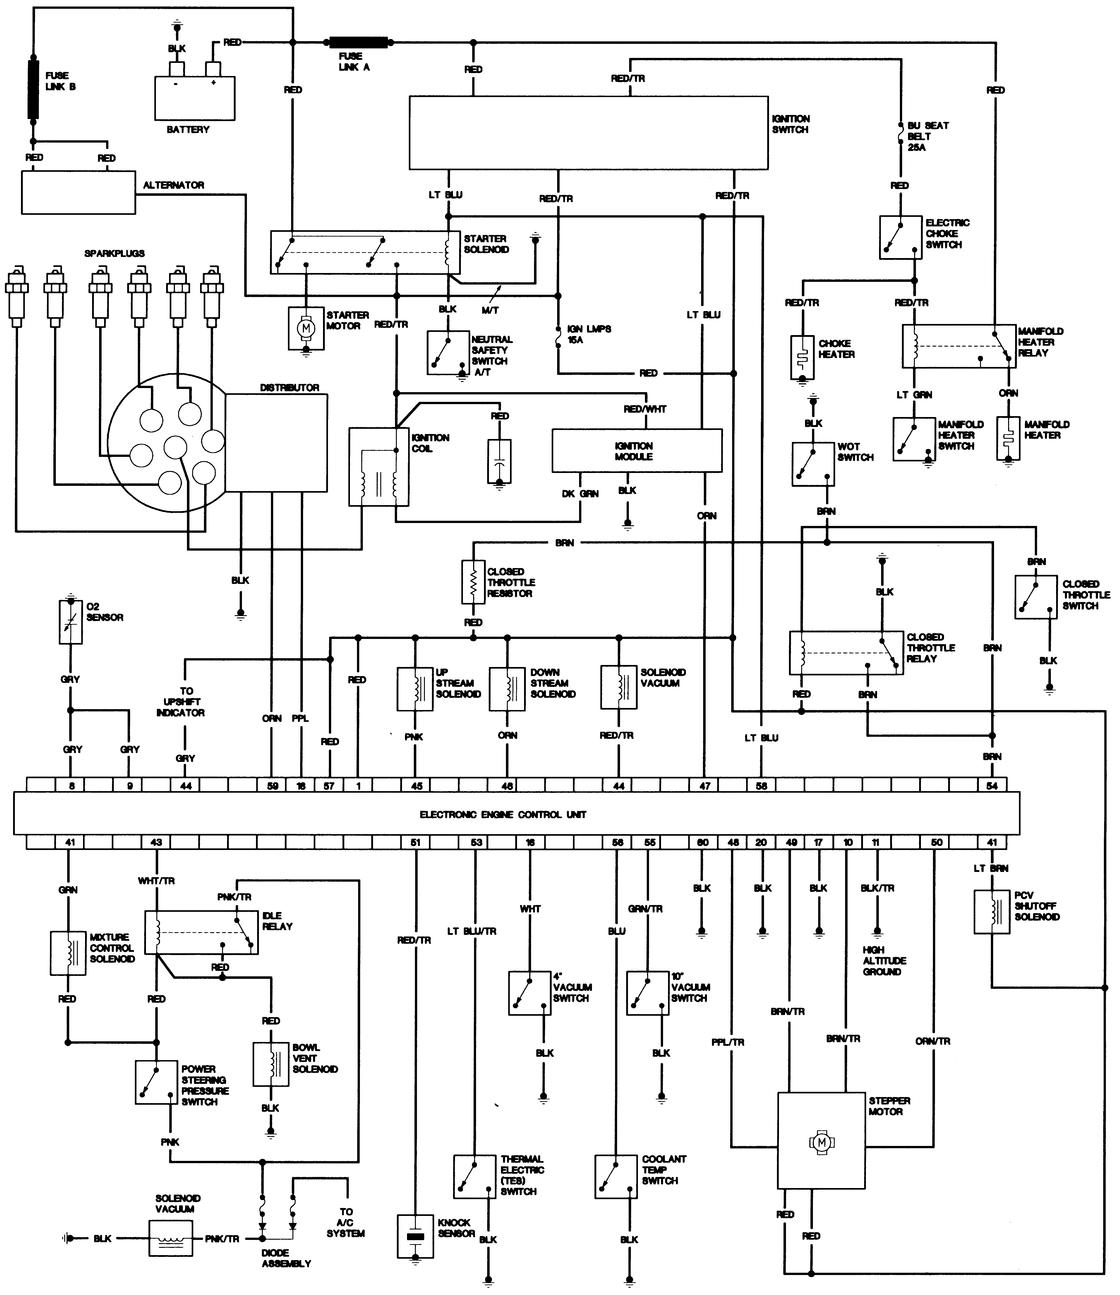 85 jeep cj7 ignition wiring diagram